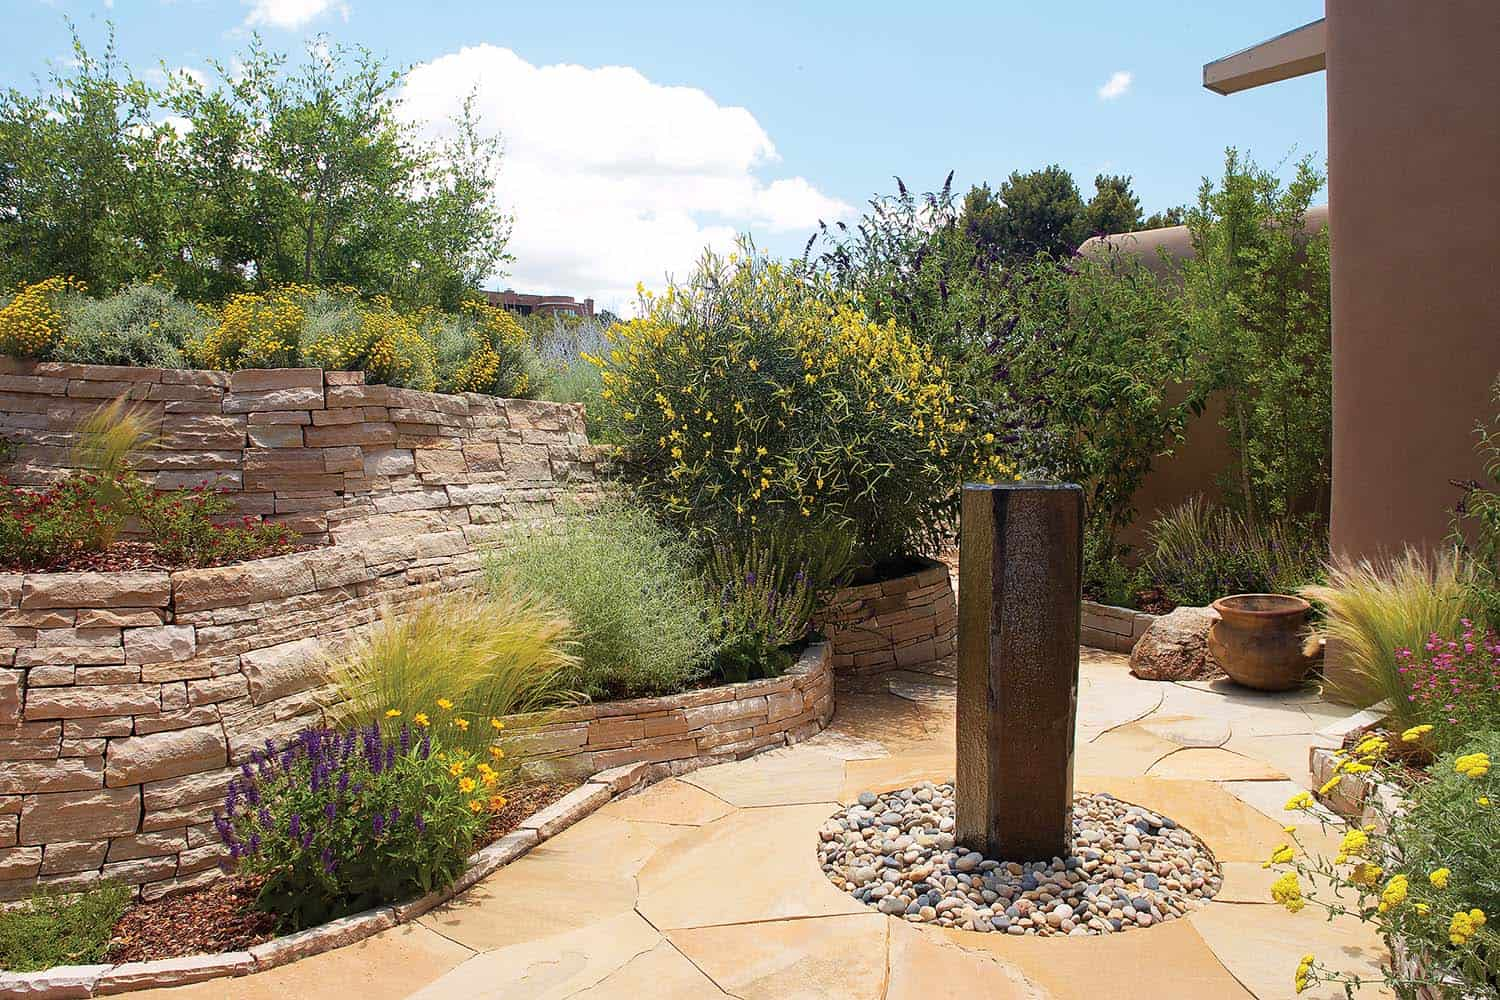 Outdoor Garden Fountain Idea